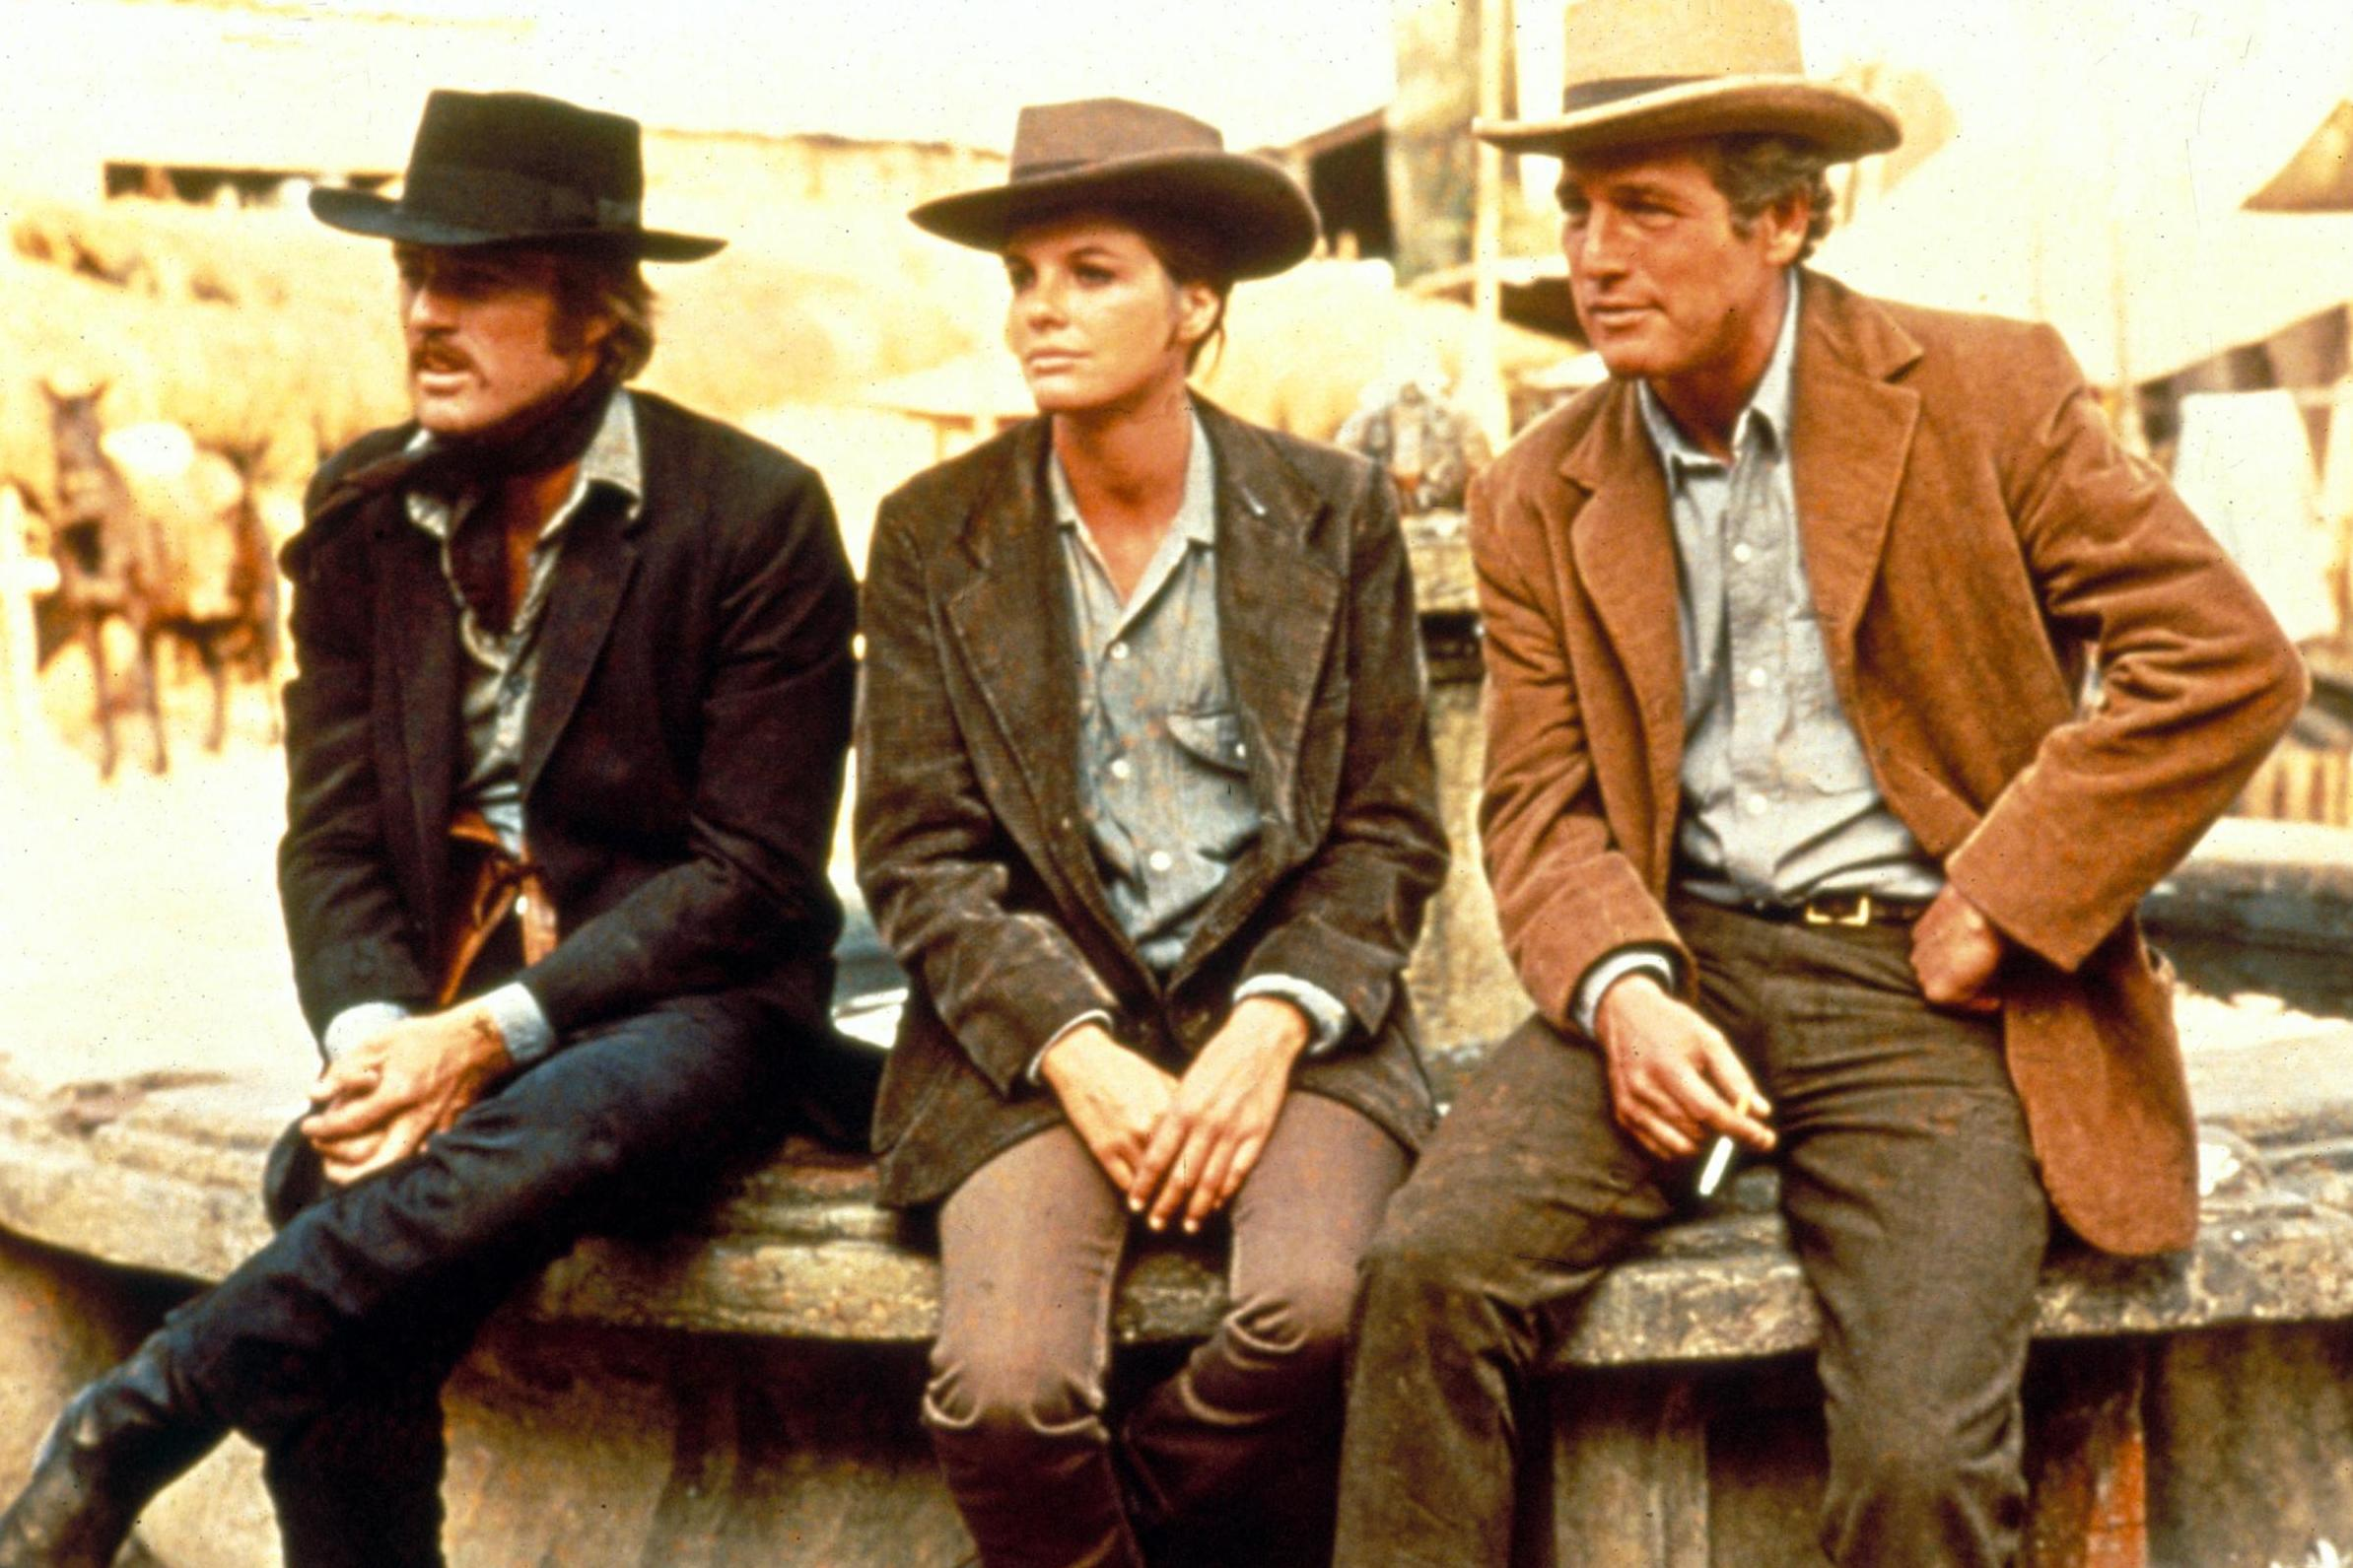 Butch Cassidy and the Sundance Kid at 50: The true story of Hollywood's greatest outlaws